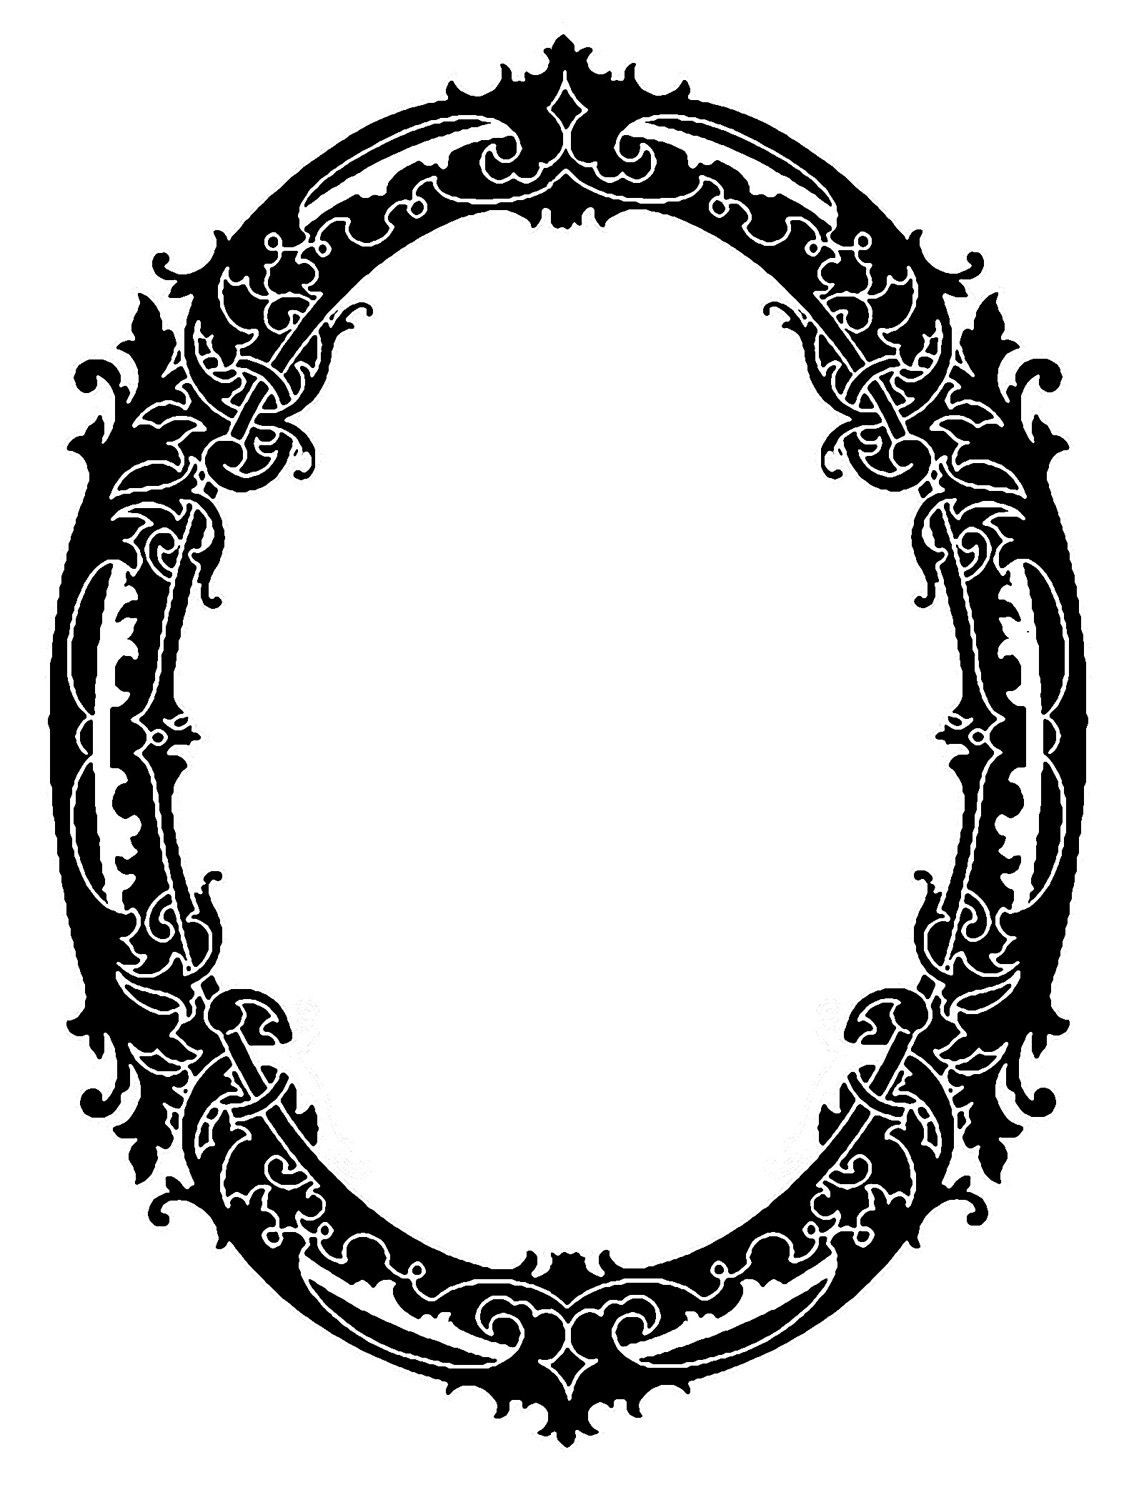 I Adore This Vintage Oval Frame One Came From Some Antique Sheet Music And Tweaked It A Bit To Create The Silhouette Version That You See Here